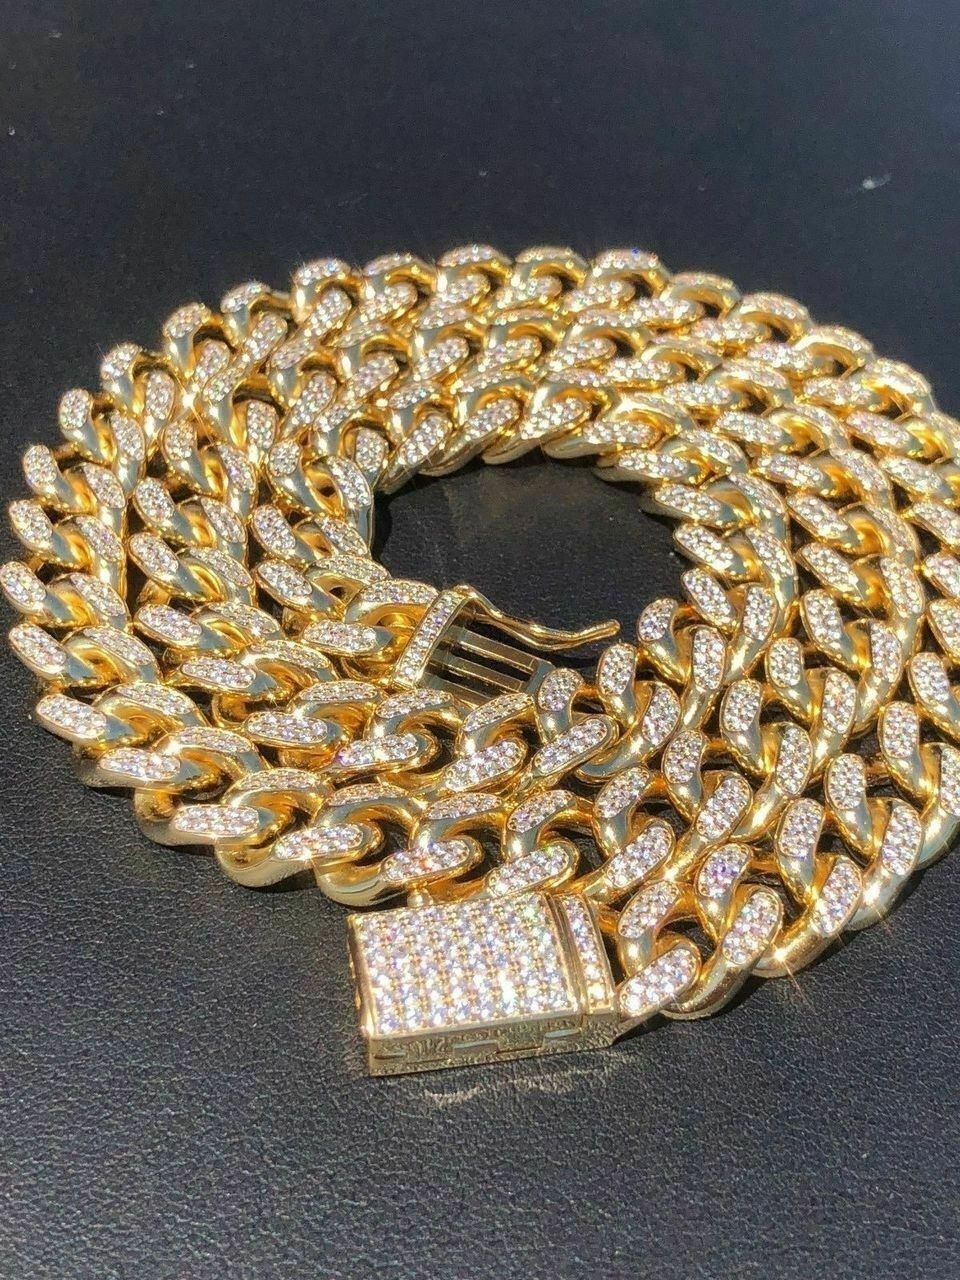 Miami_Cuban_Link_Chain_14k_Yellow_Gold_Over_Solid_925_Silver_Icy_10mm